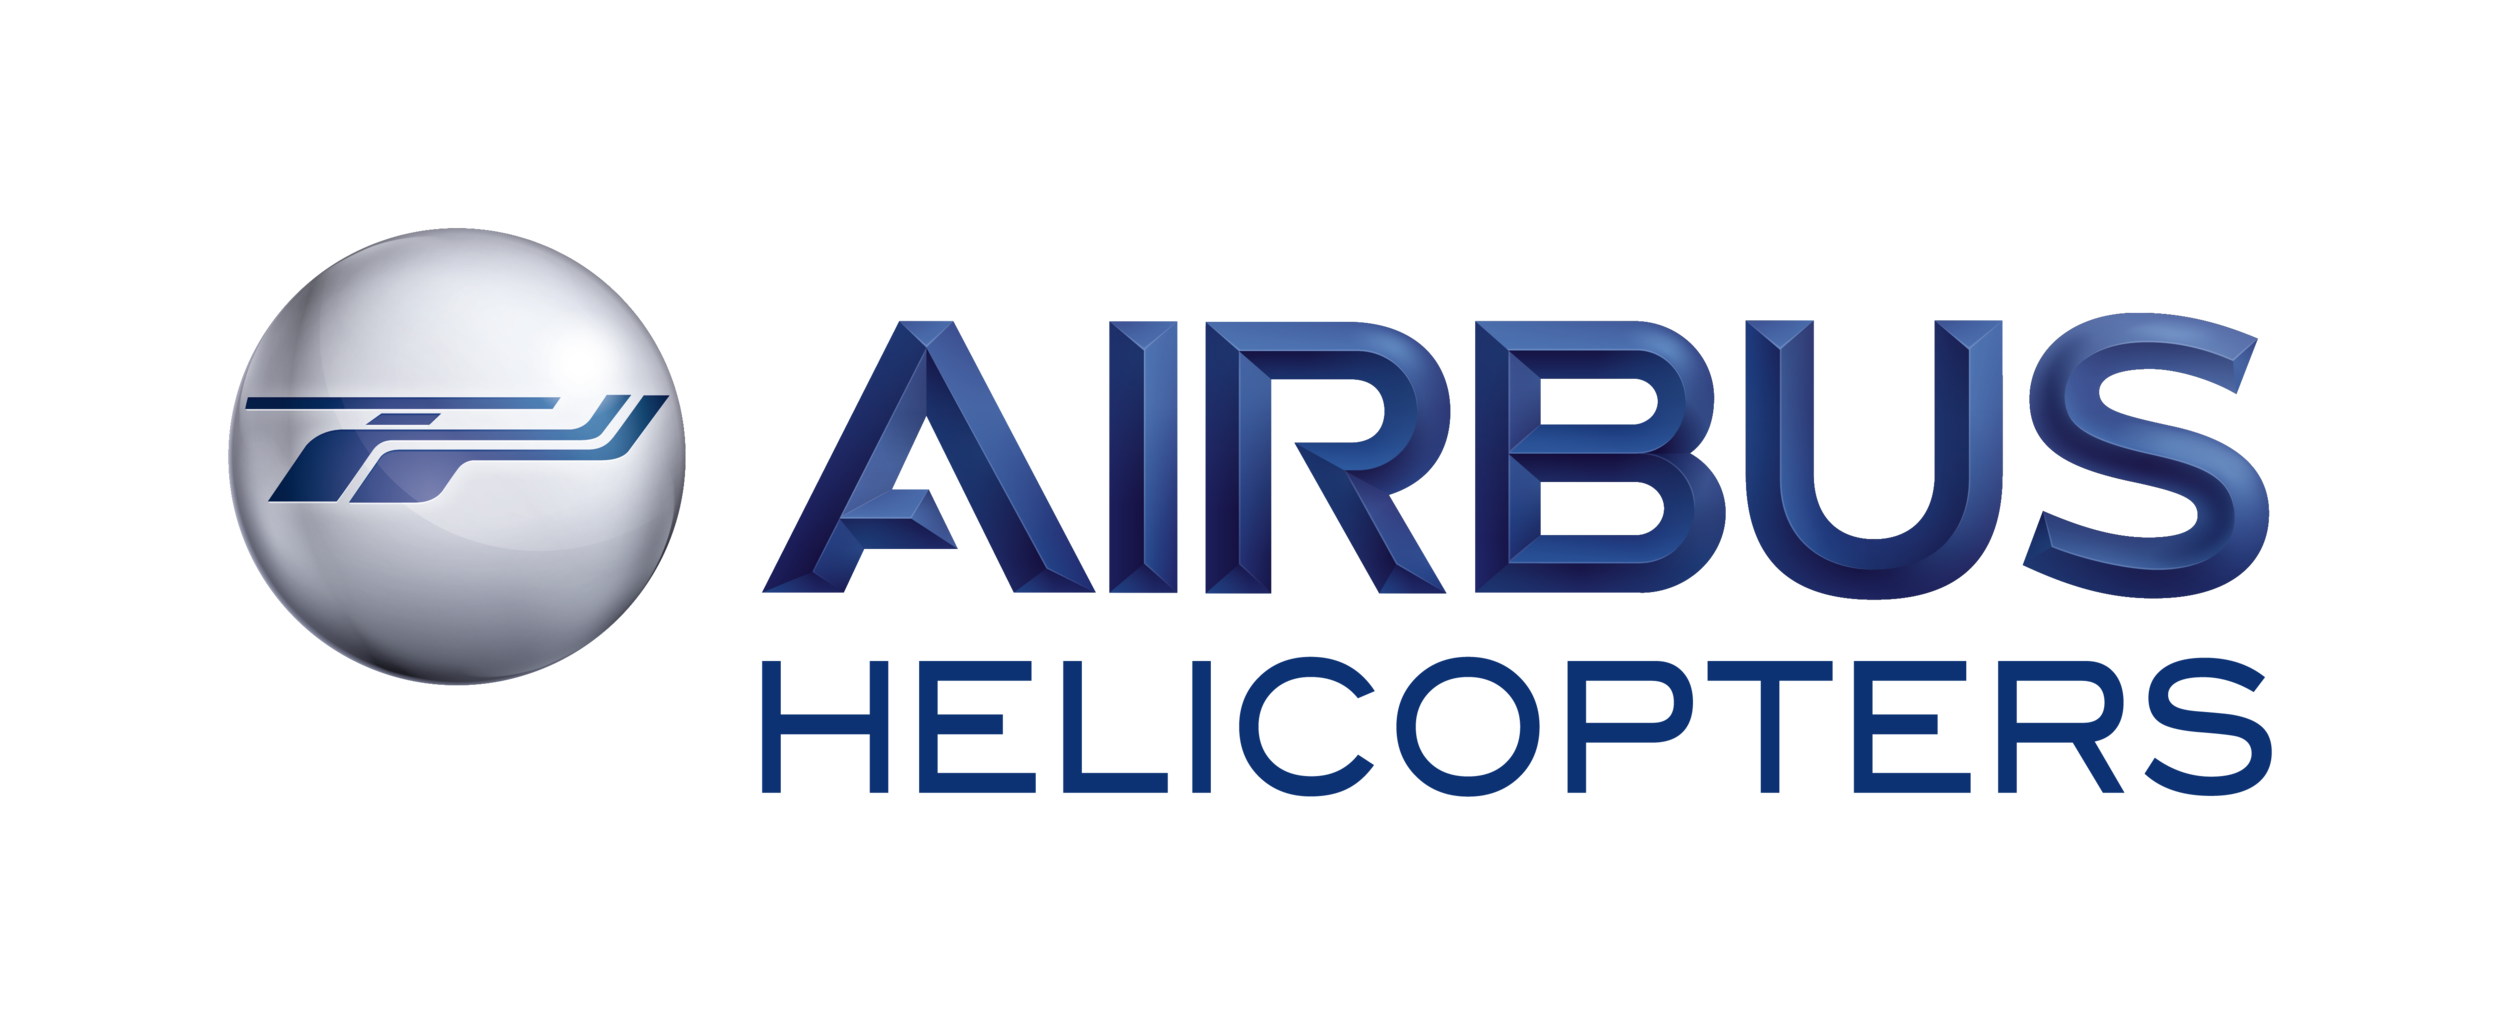 airbus_helicopters_3d_blue_rgb.png